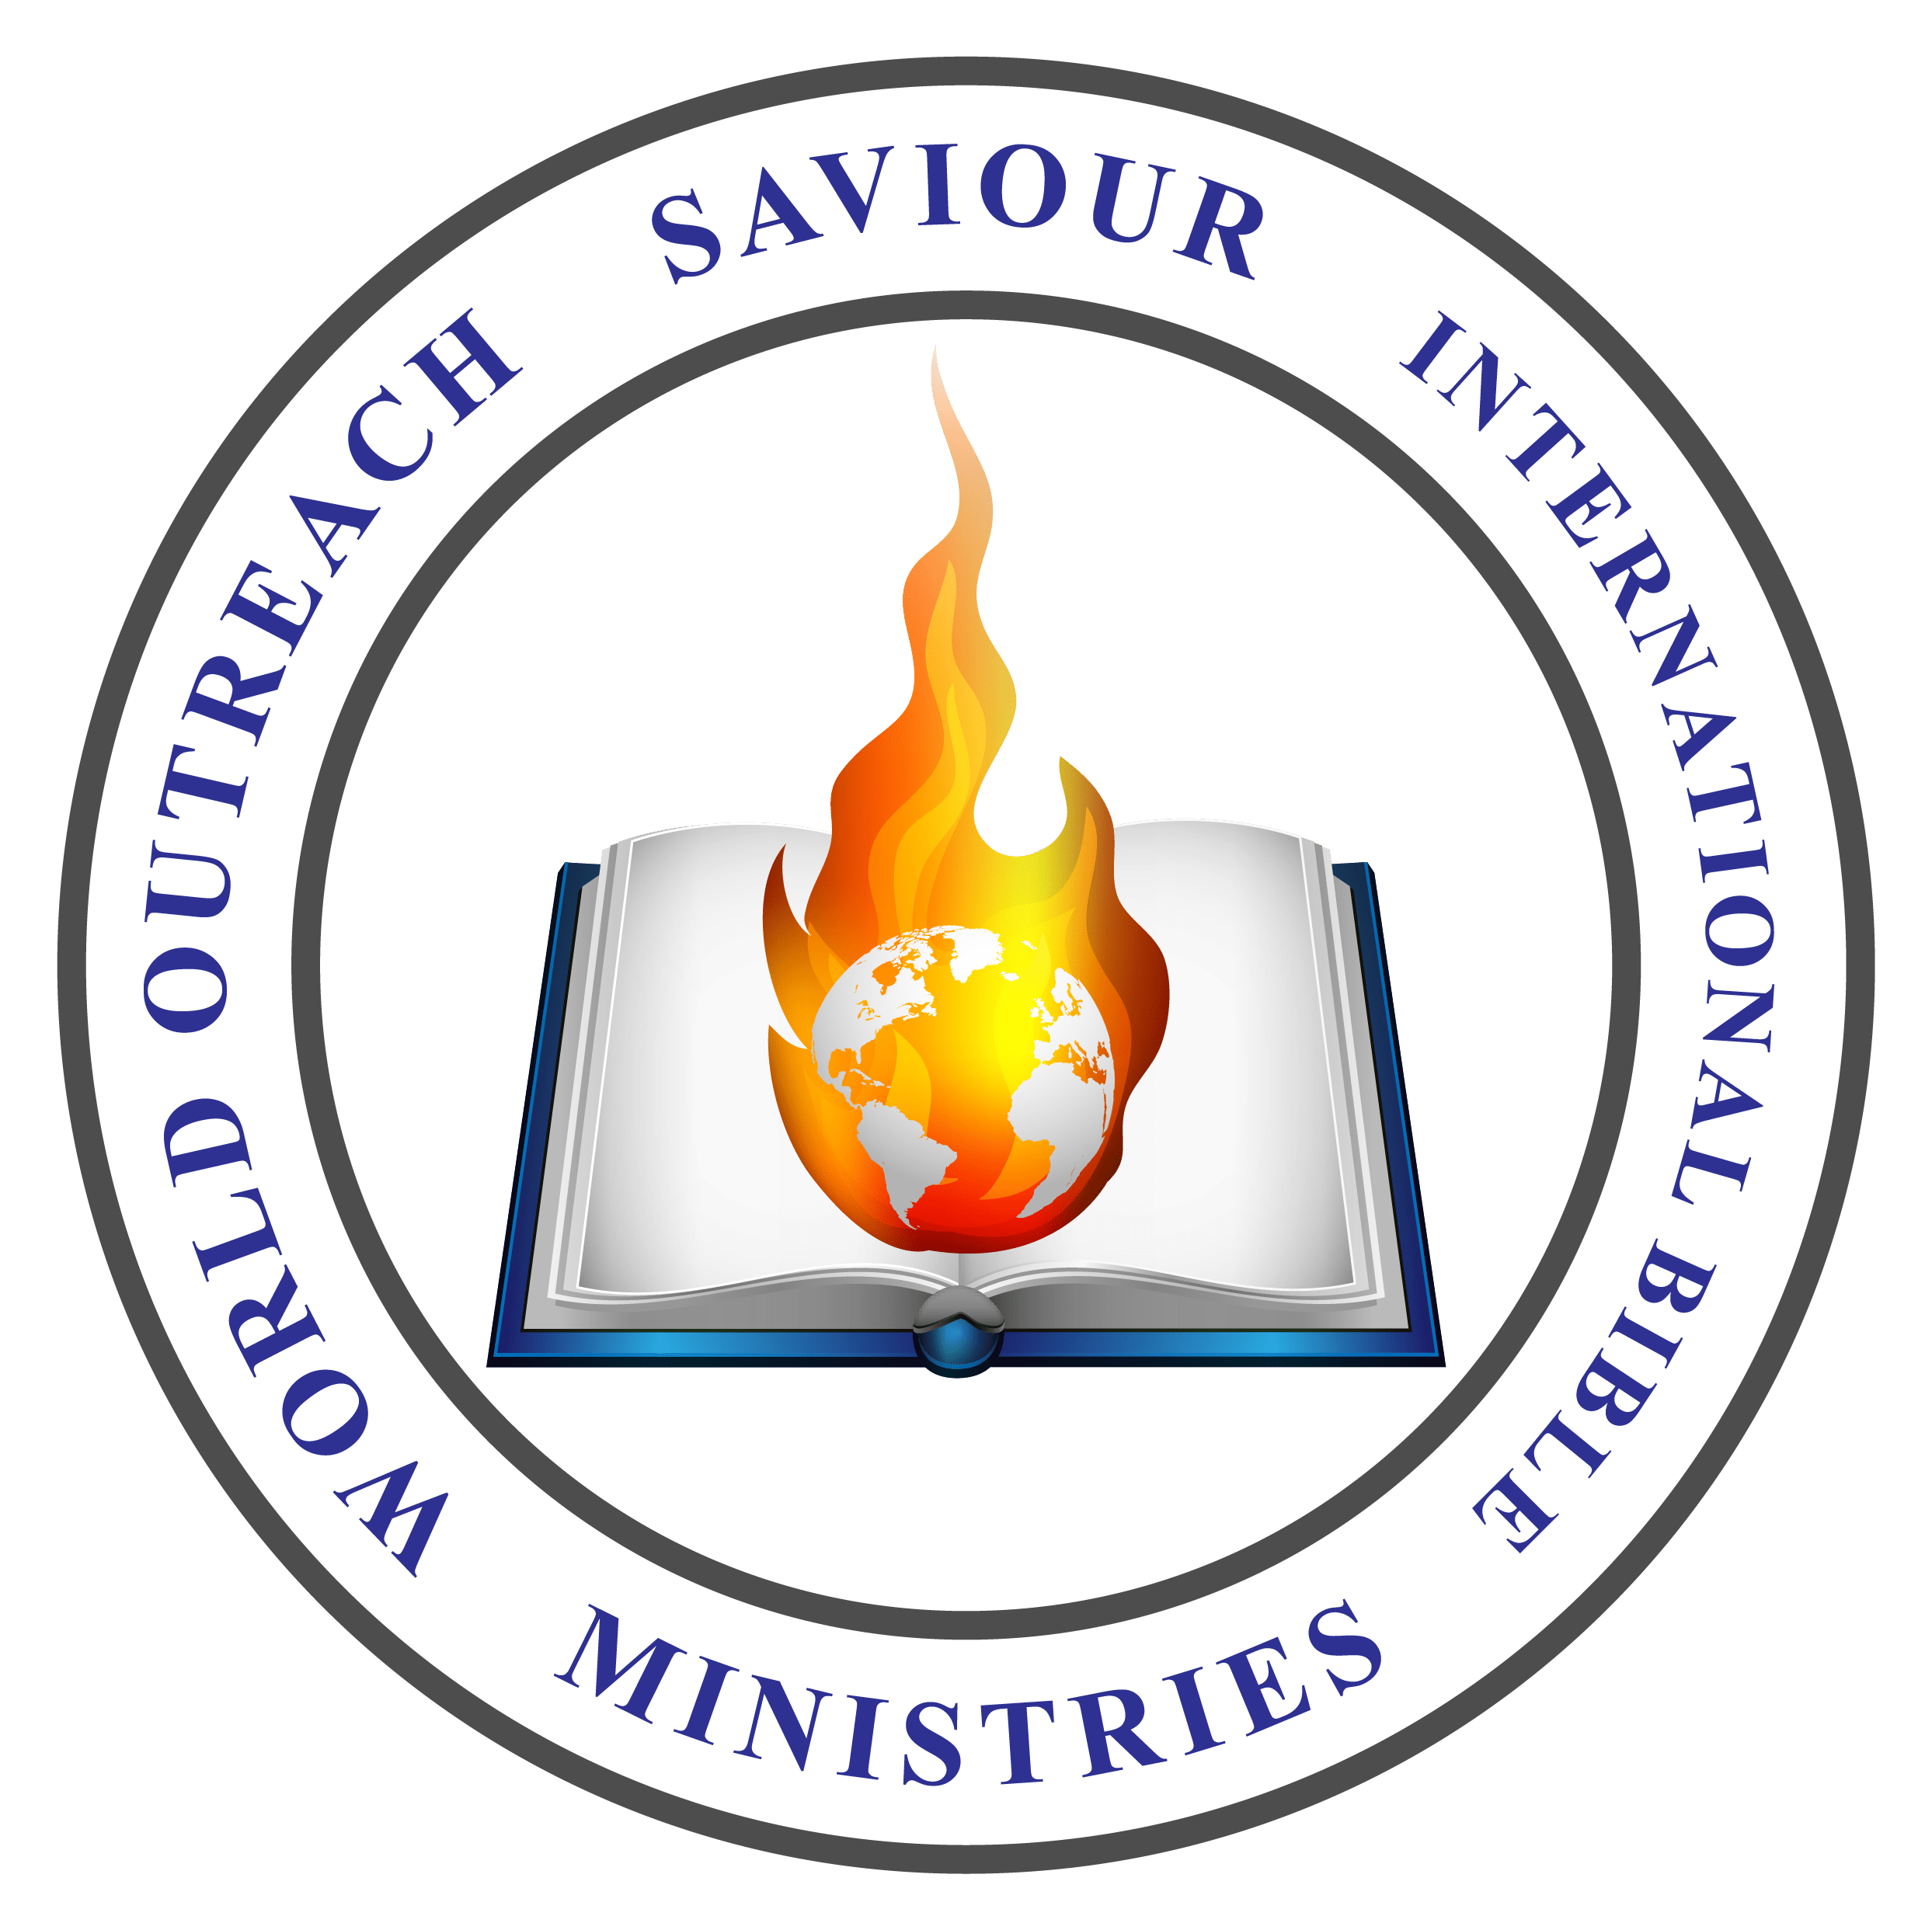 WORLD OUTREACH SAVIOUR INTERNATIONAL BIBLE MINISTRIES WORLDWIDE